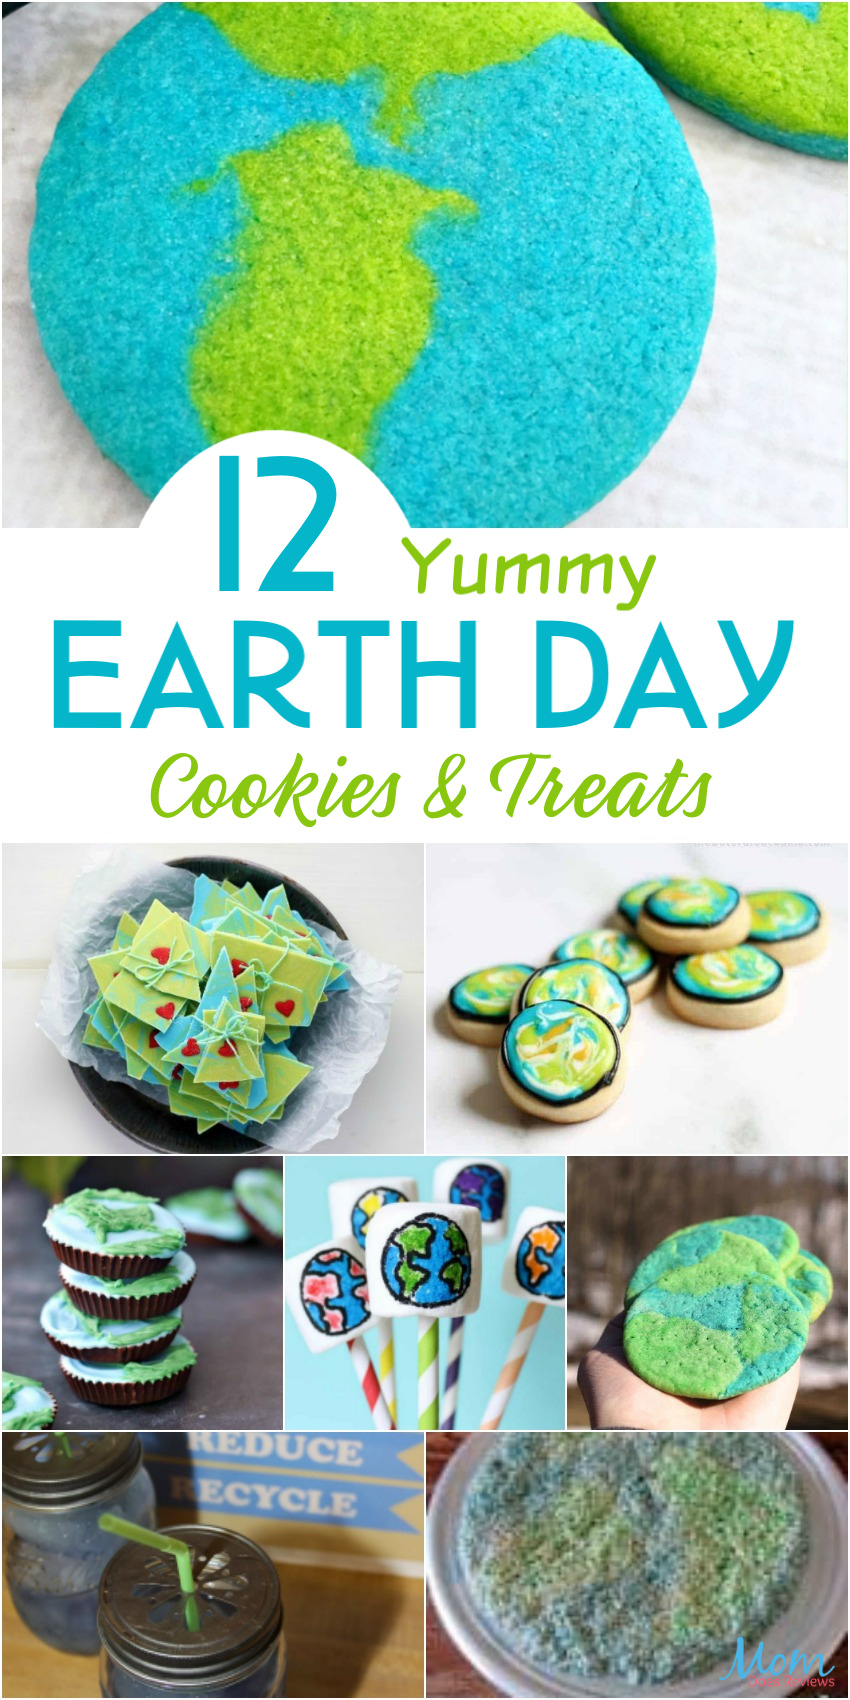 12 Yummy Earth Day Cookies & Treats for a Fun Celebration #cookies #treats #earthday #gogreen #desserts #sweets #getinmybelly